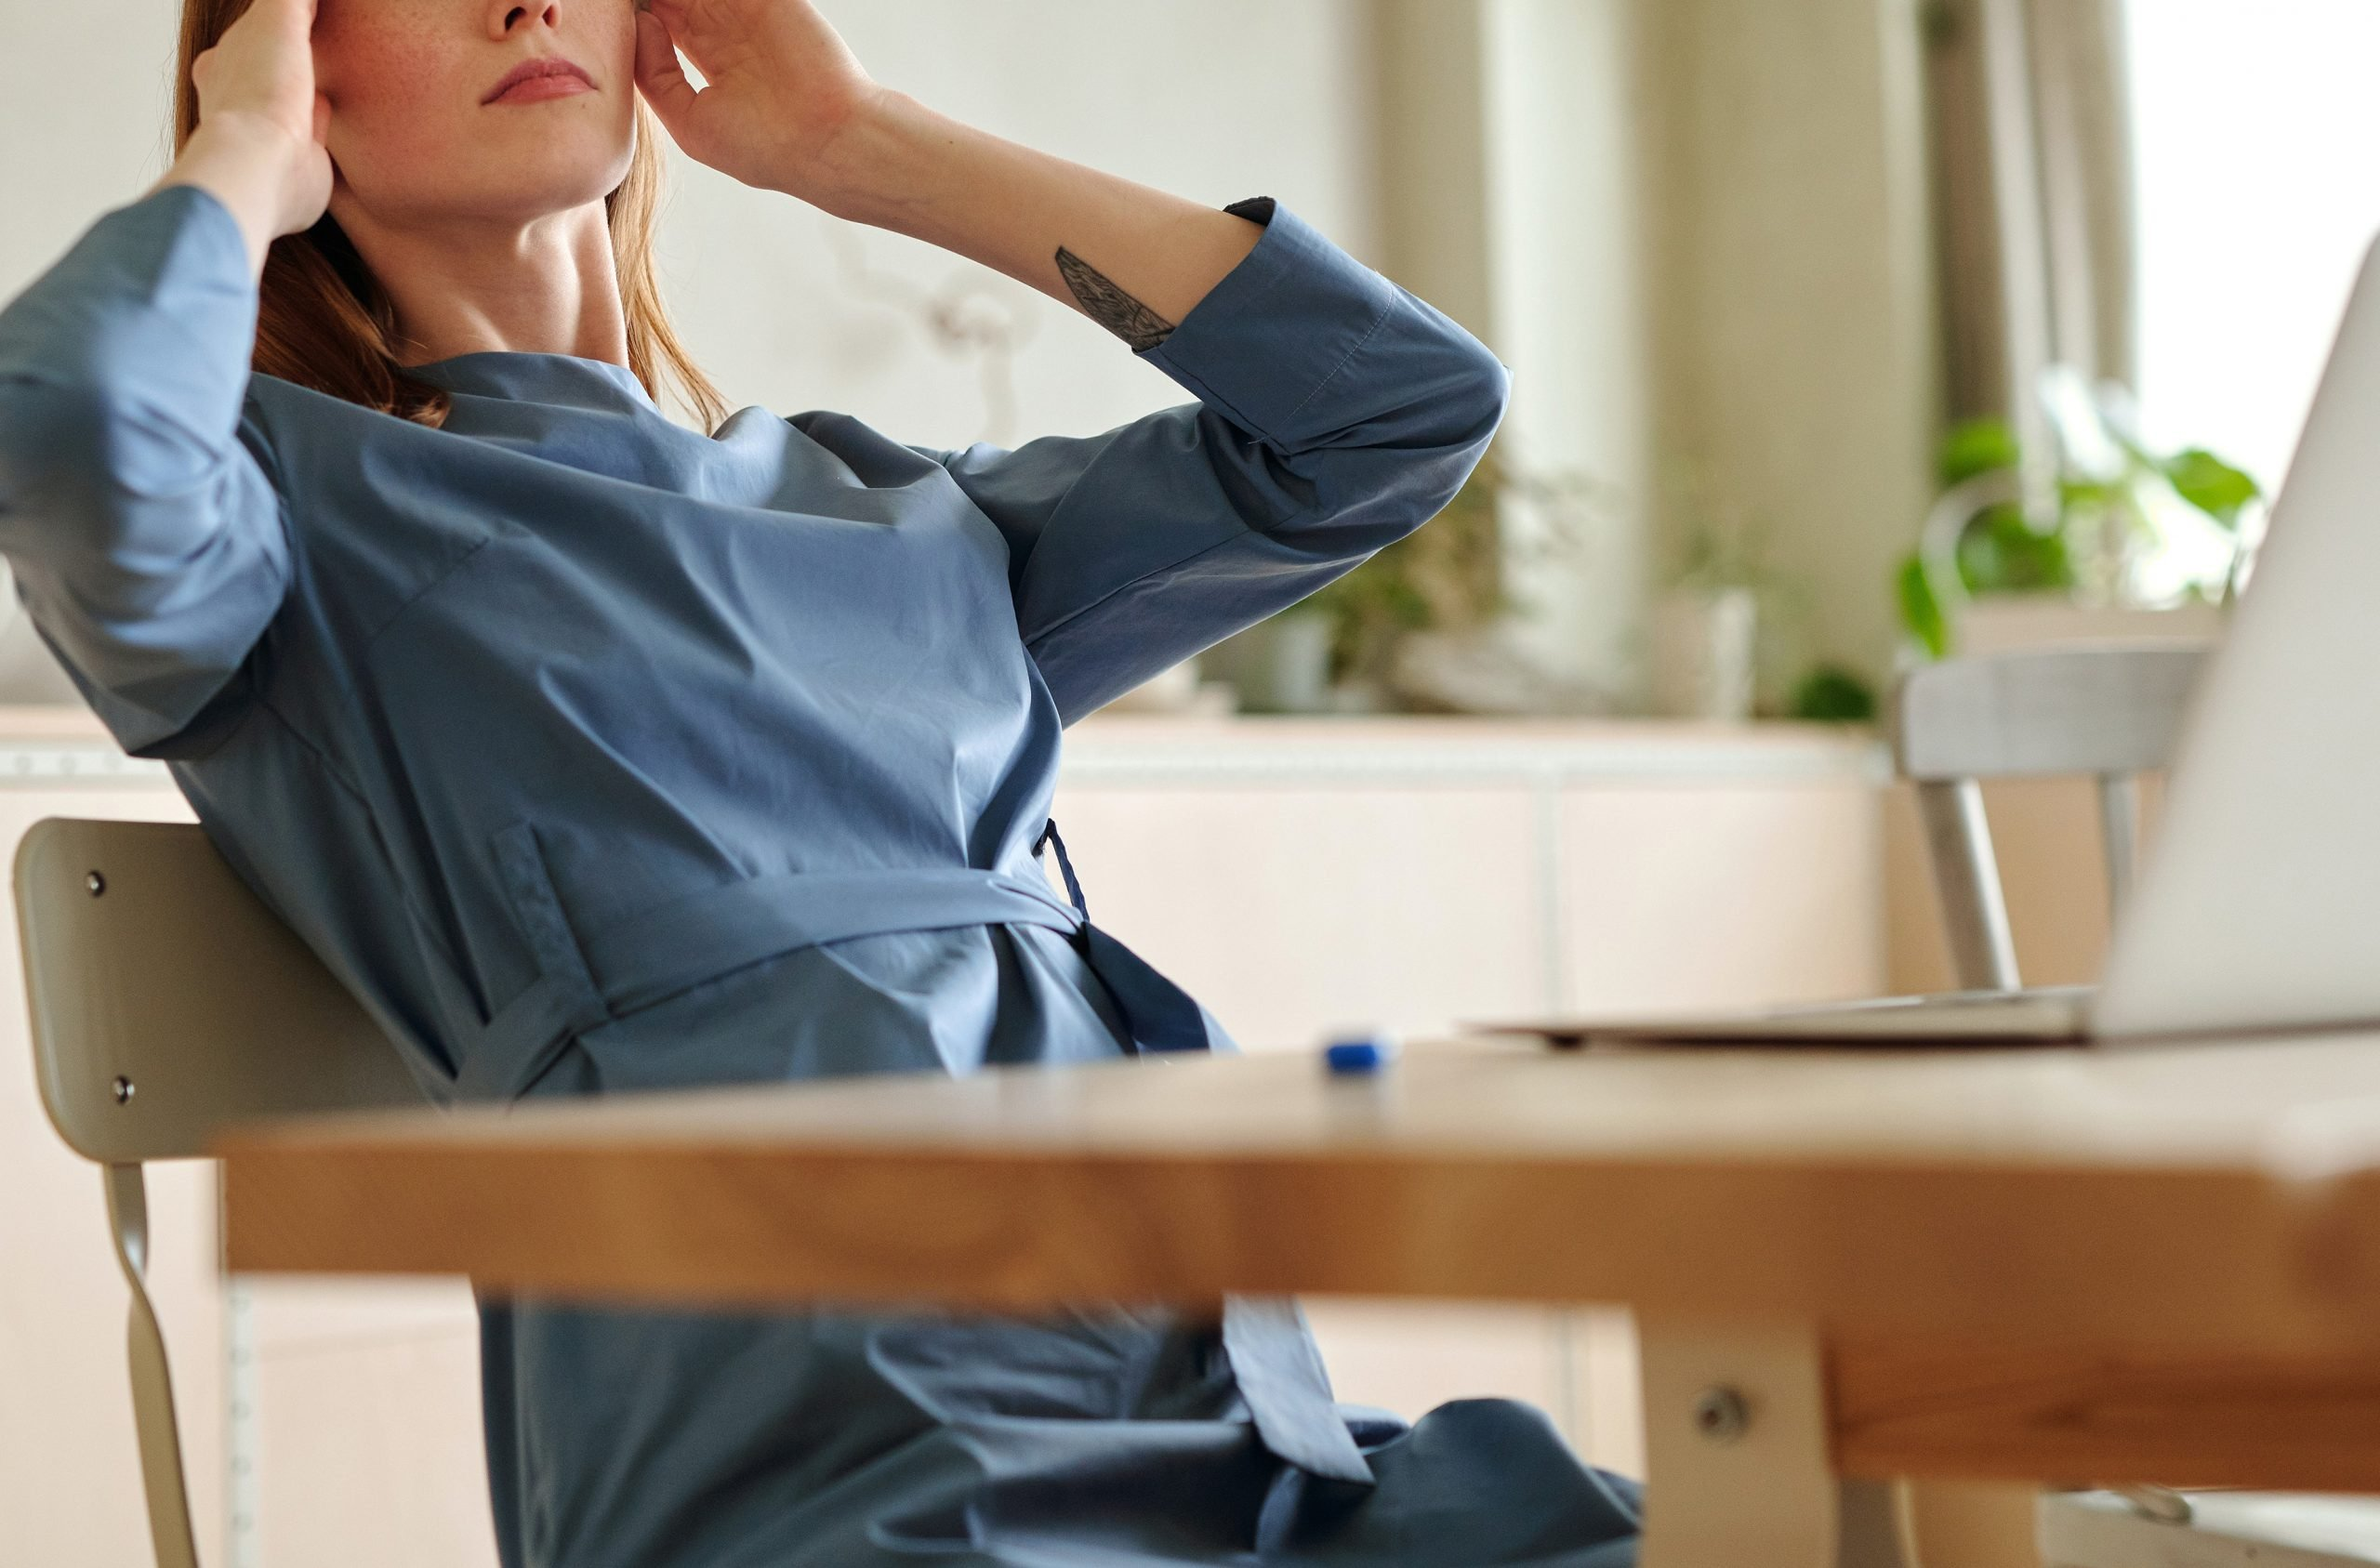 woman with migraine at desk, CBT Therapy for migraines, Ft. Lauderdale, FL